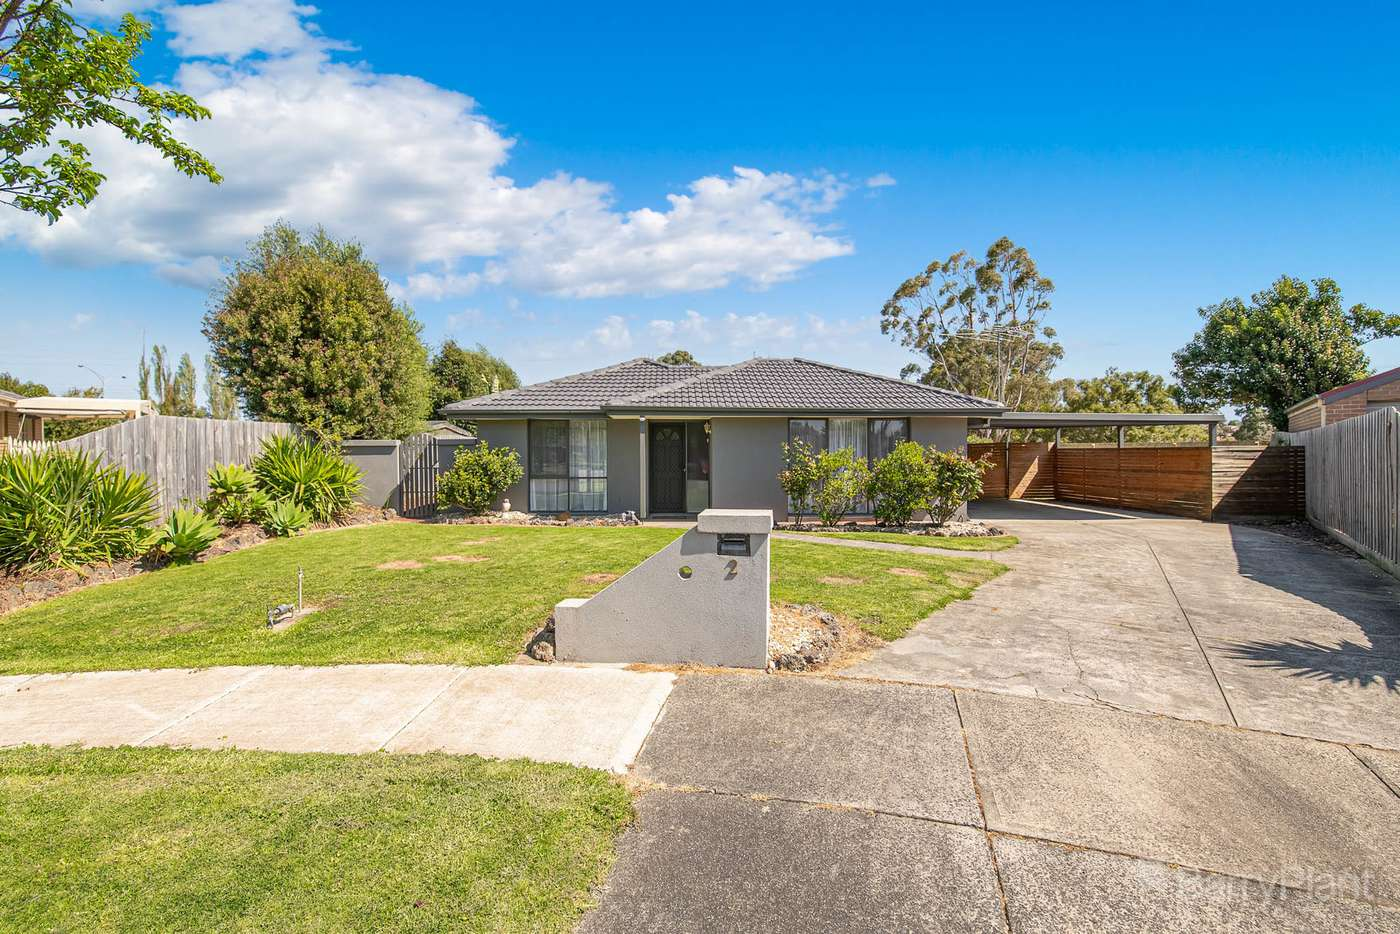 Main view of Homely house listing, 2 Wilga Court, Narre Warren VIC 3805